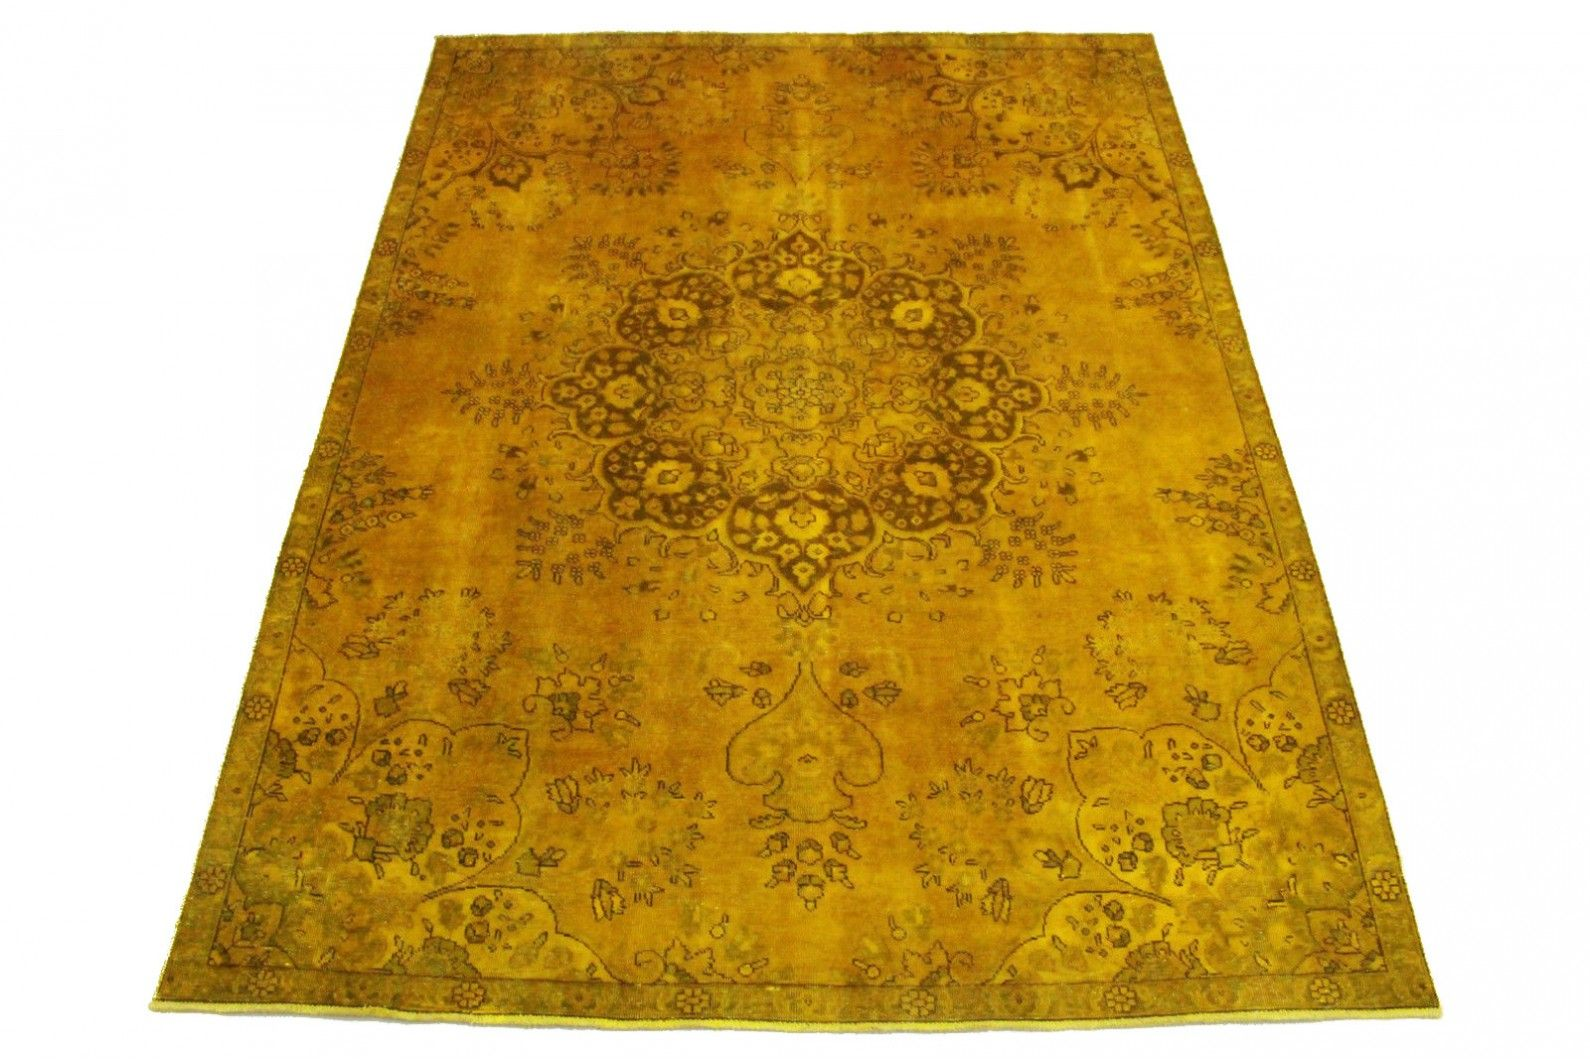 Teppich Gold Rund Vintage Teppich Gold In 300x220cm | Hometrends And Colors